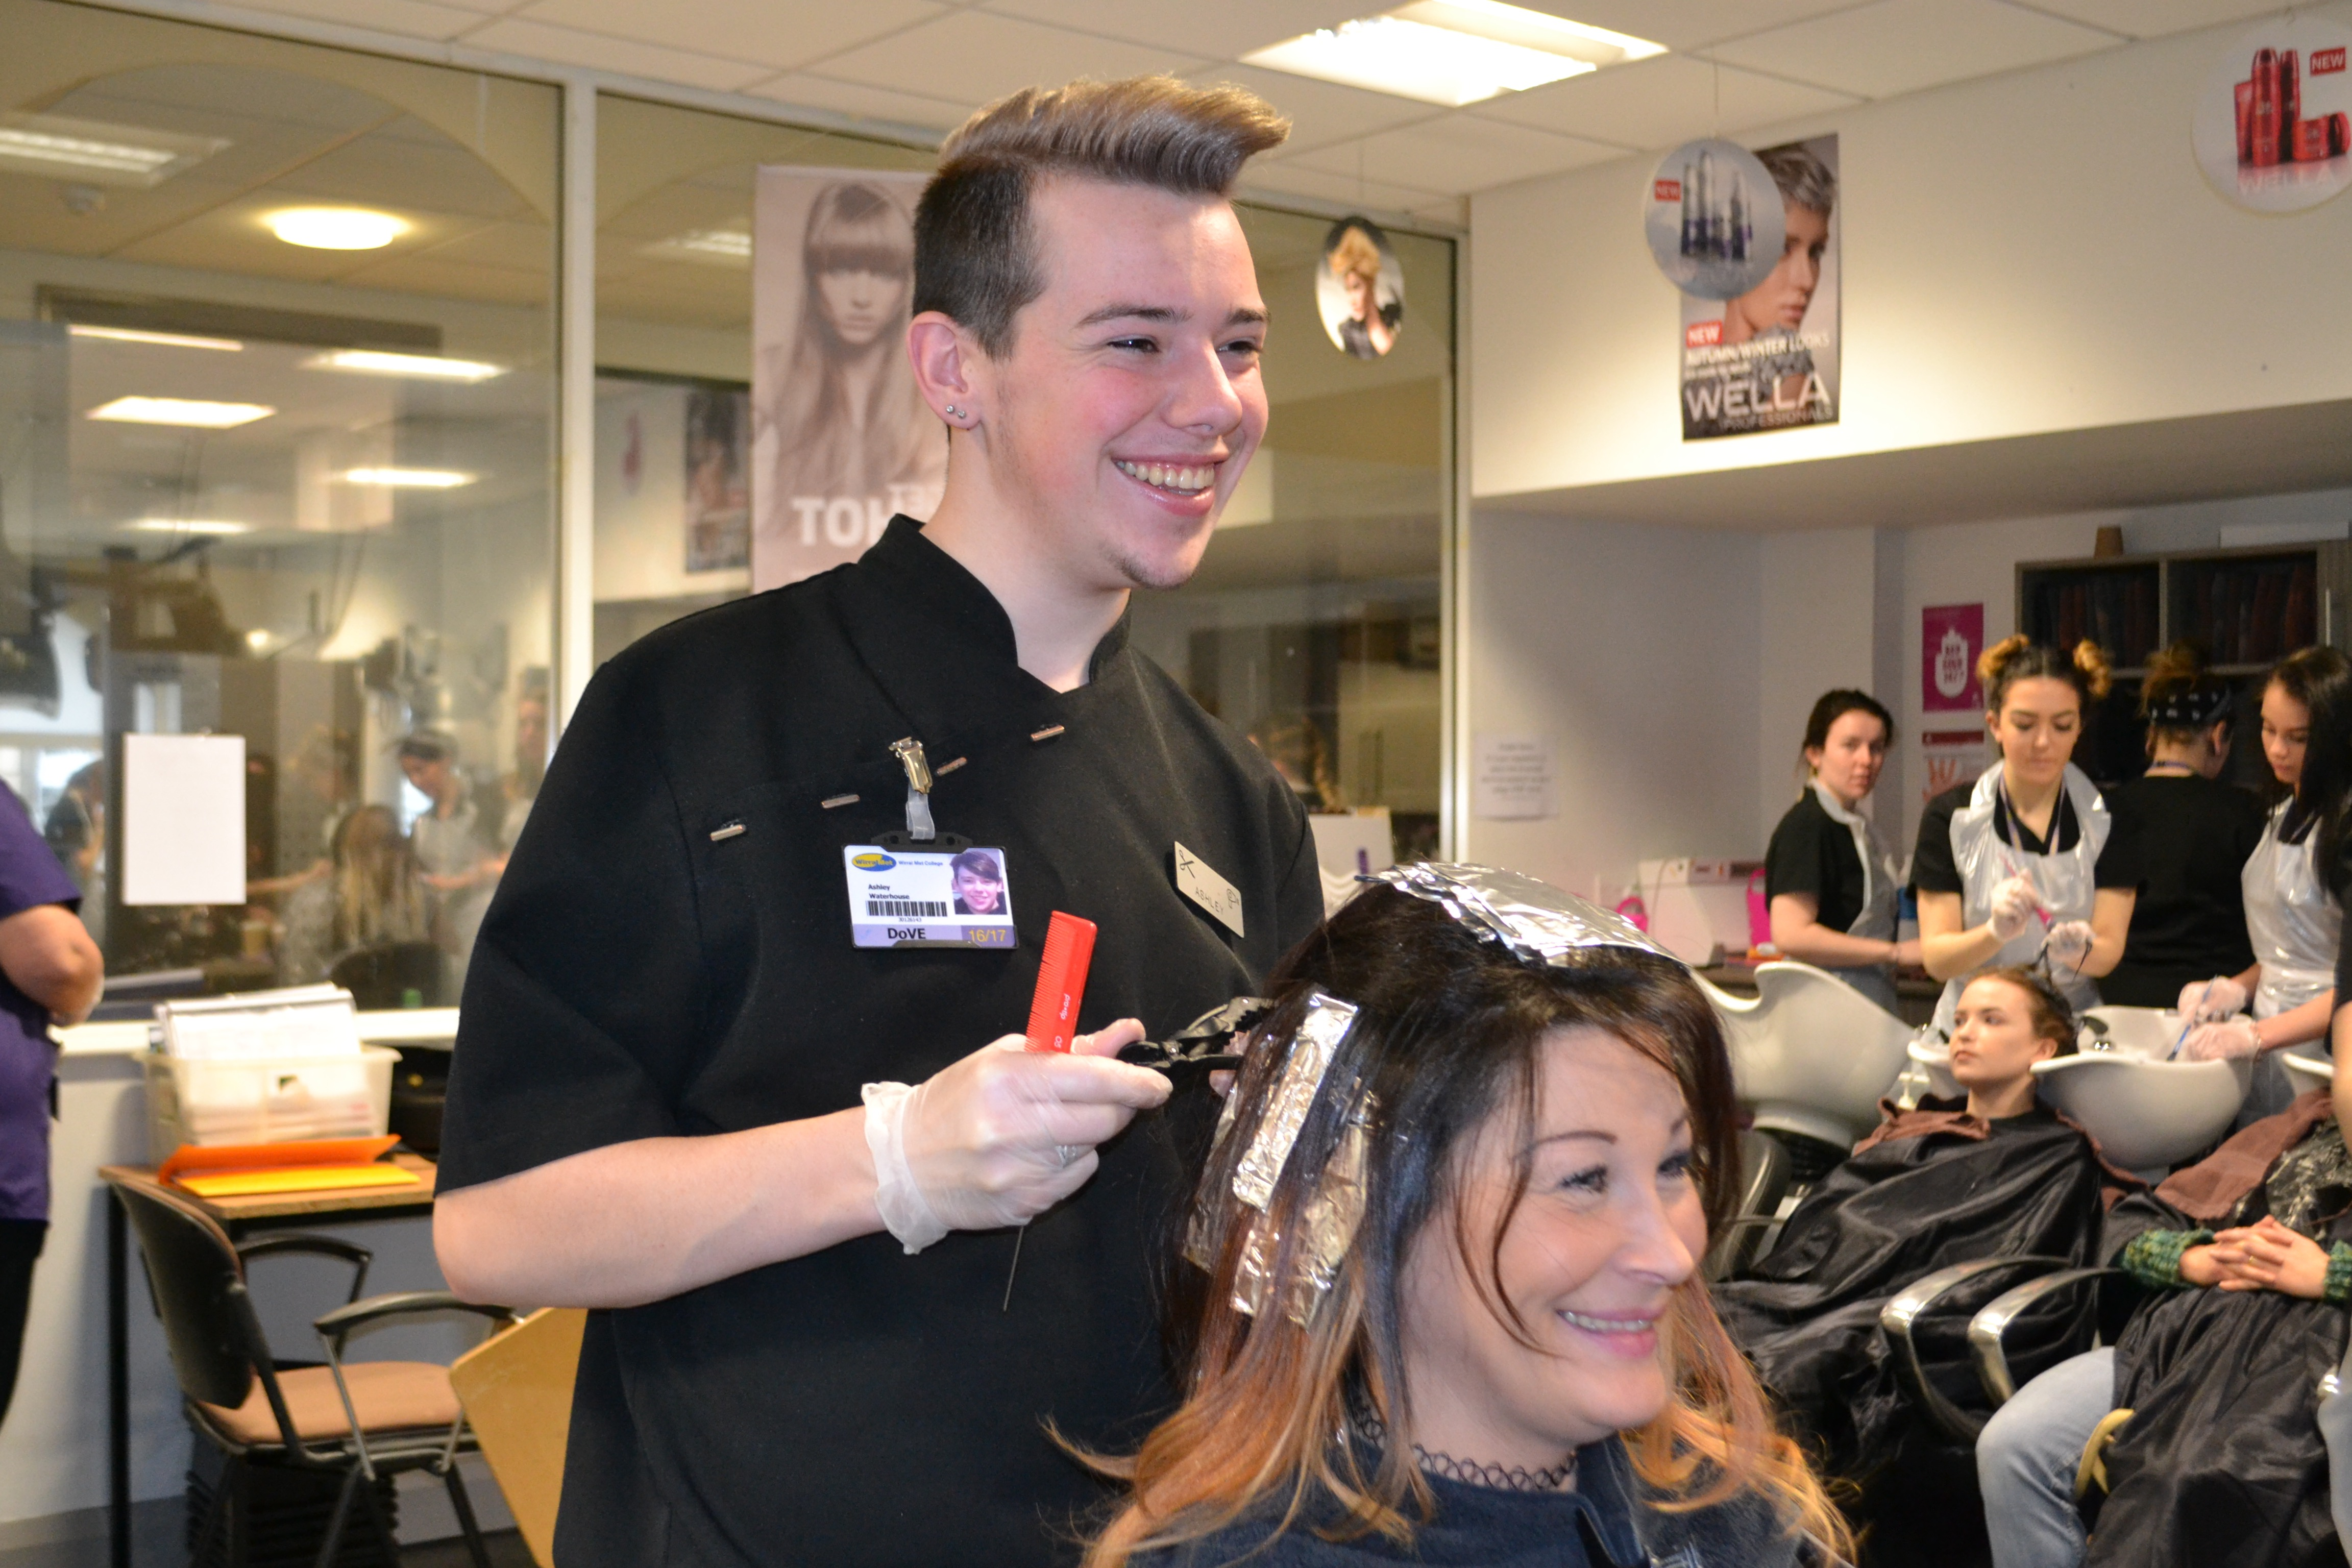 hairdressing, wirral met, salon, conway park,